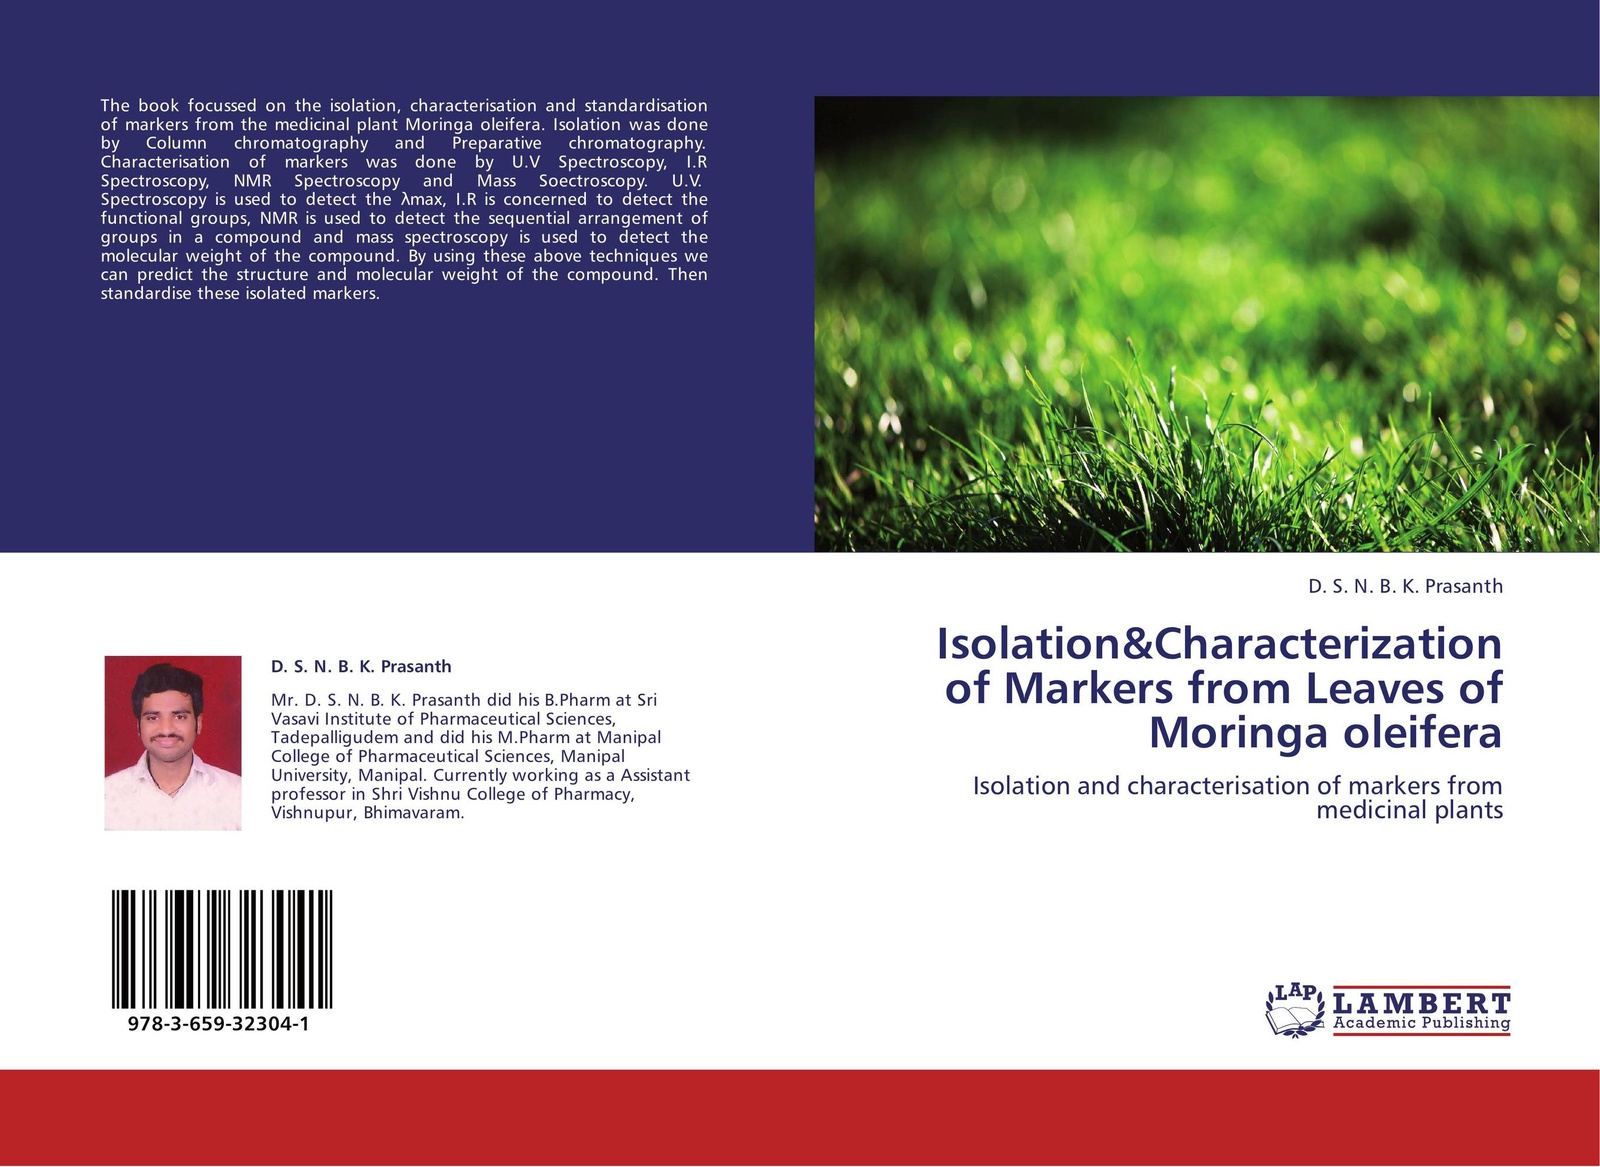 D. S. N. B. K. Prasanth Isolation&Characterization of Markers from Leaves of Moringa oleifera robert henry j molecular markers in plants